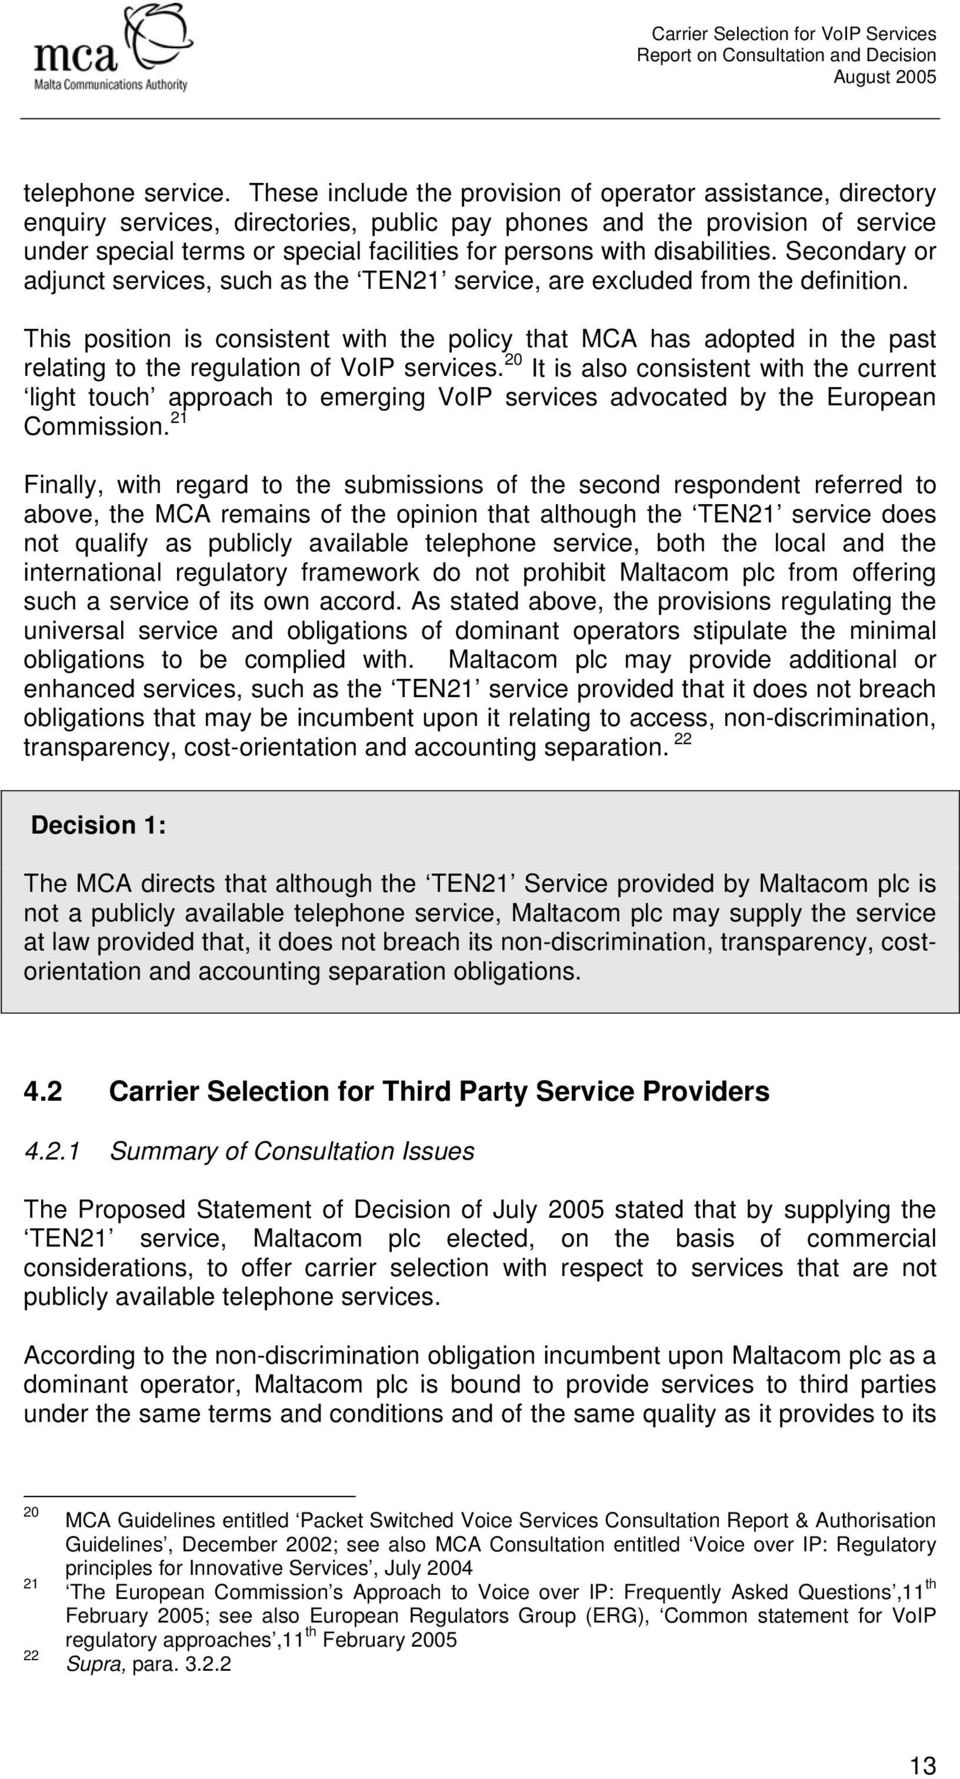 disabilities. Secondary or adjunct services, such as the TEN21 service, are excluded from the definition.